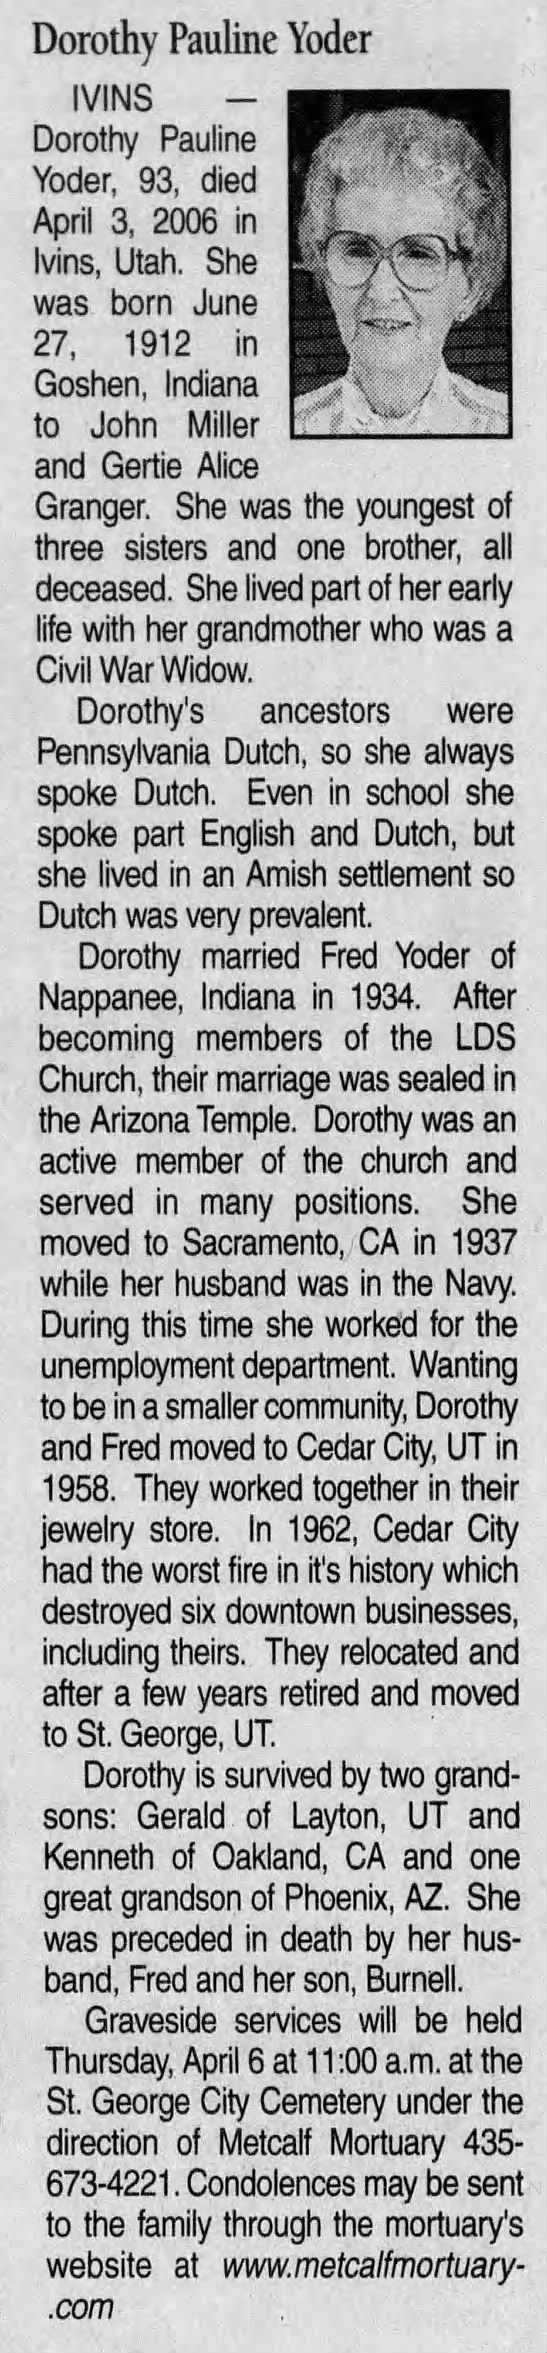 The Daily Spectrum (Saint George, Utah) 06 Apr 2006, Thursday, Page 5 - Dorothy Pauline Yoder IVINS -Dorothy -Dorothy...